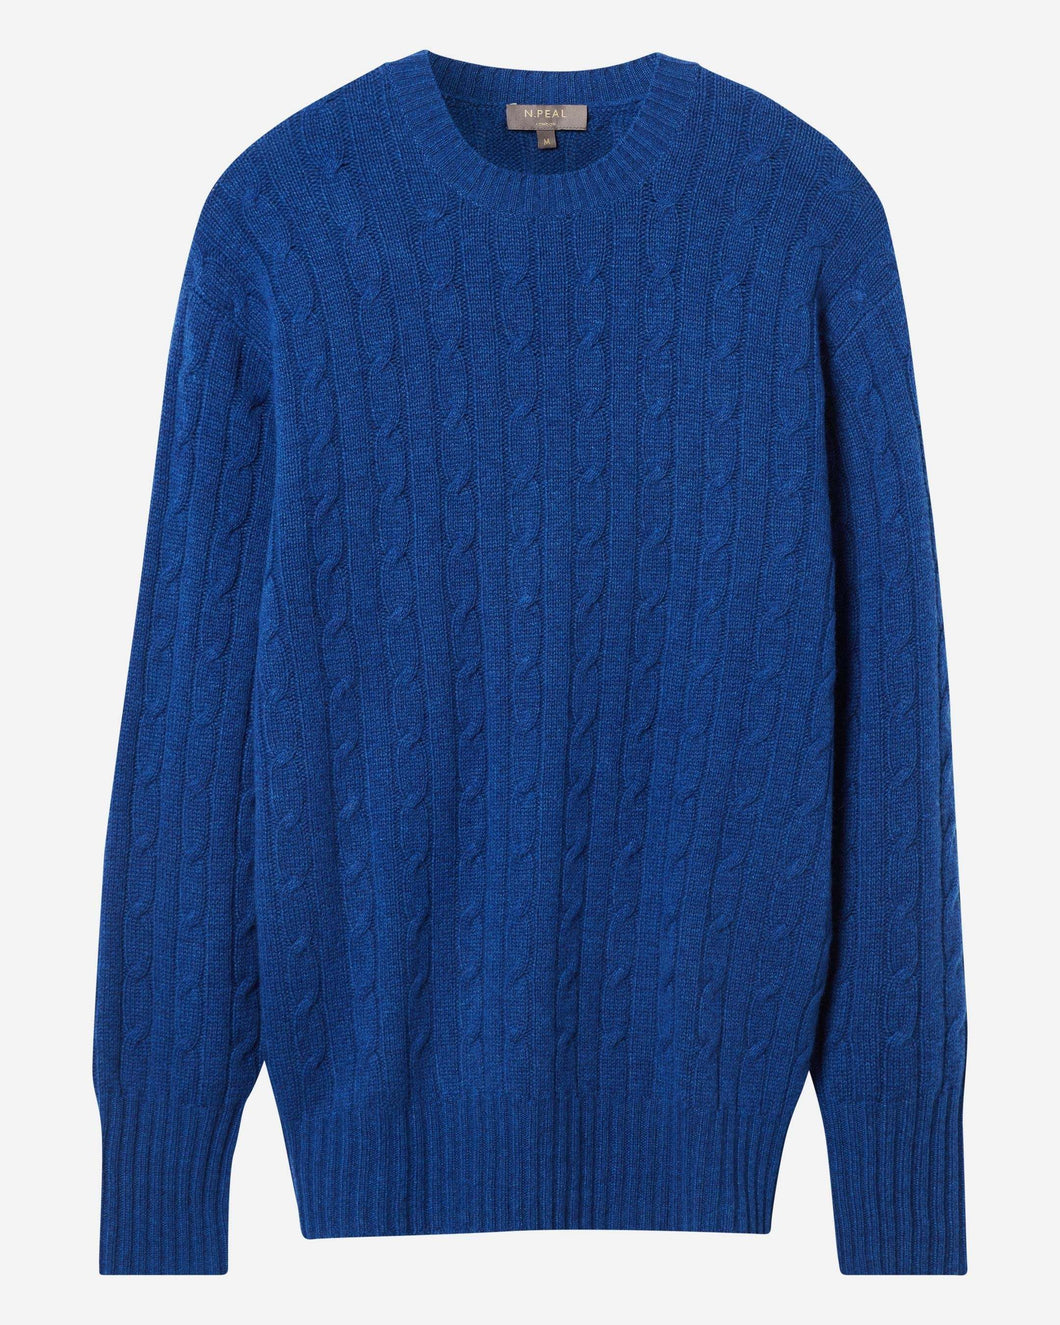 The Thames Cable Round Neck Cashmere Jumper Midnight Blue